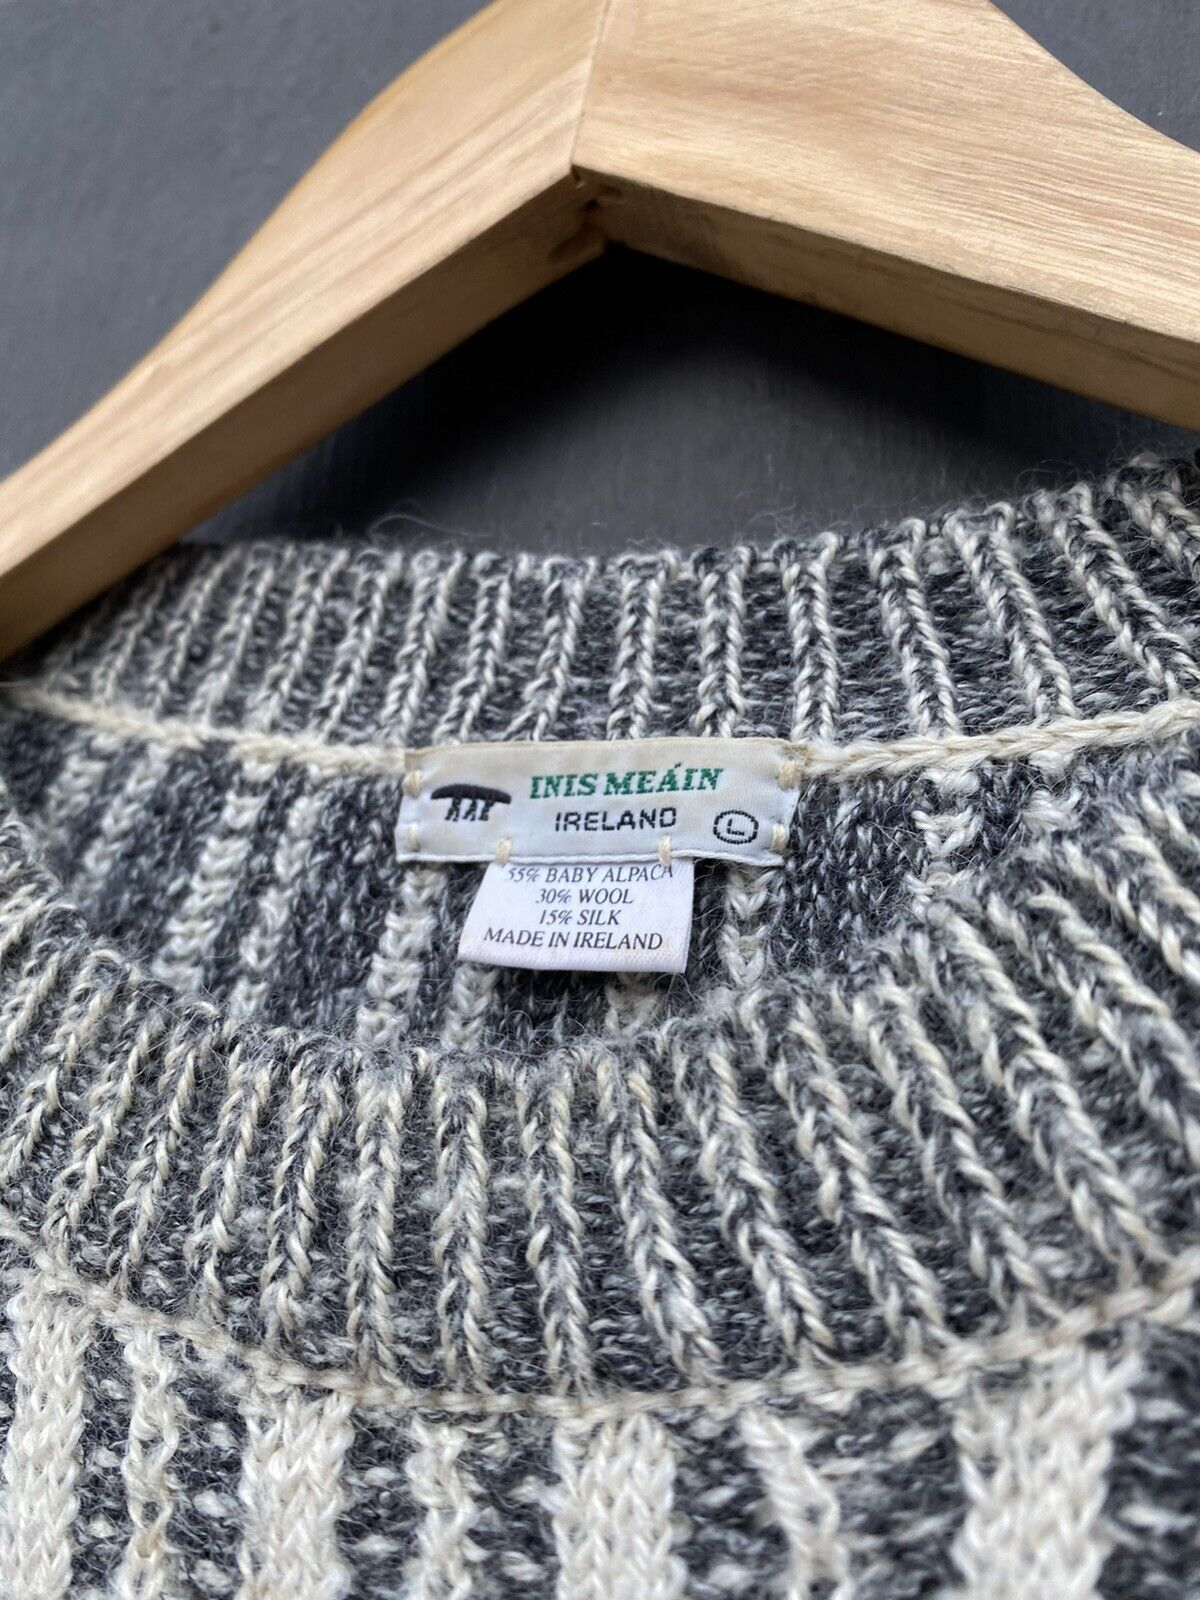 Inis Meain striped alpaca sweater size L - image 3